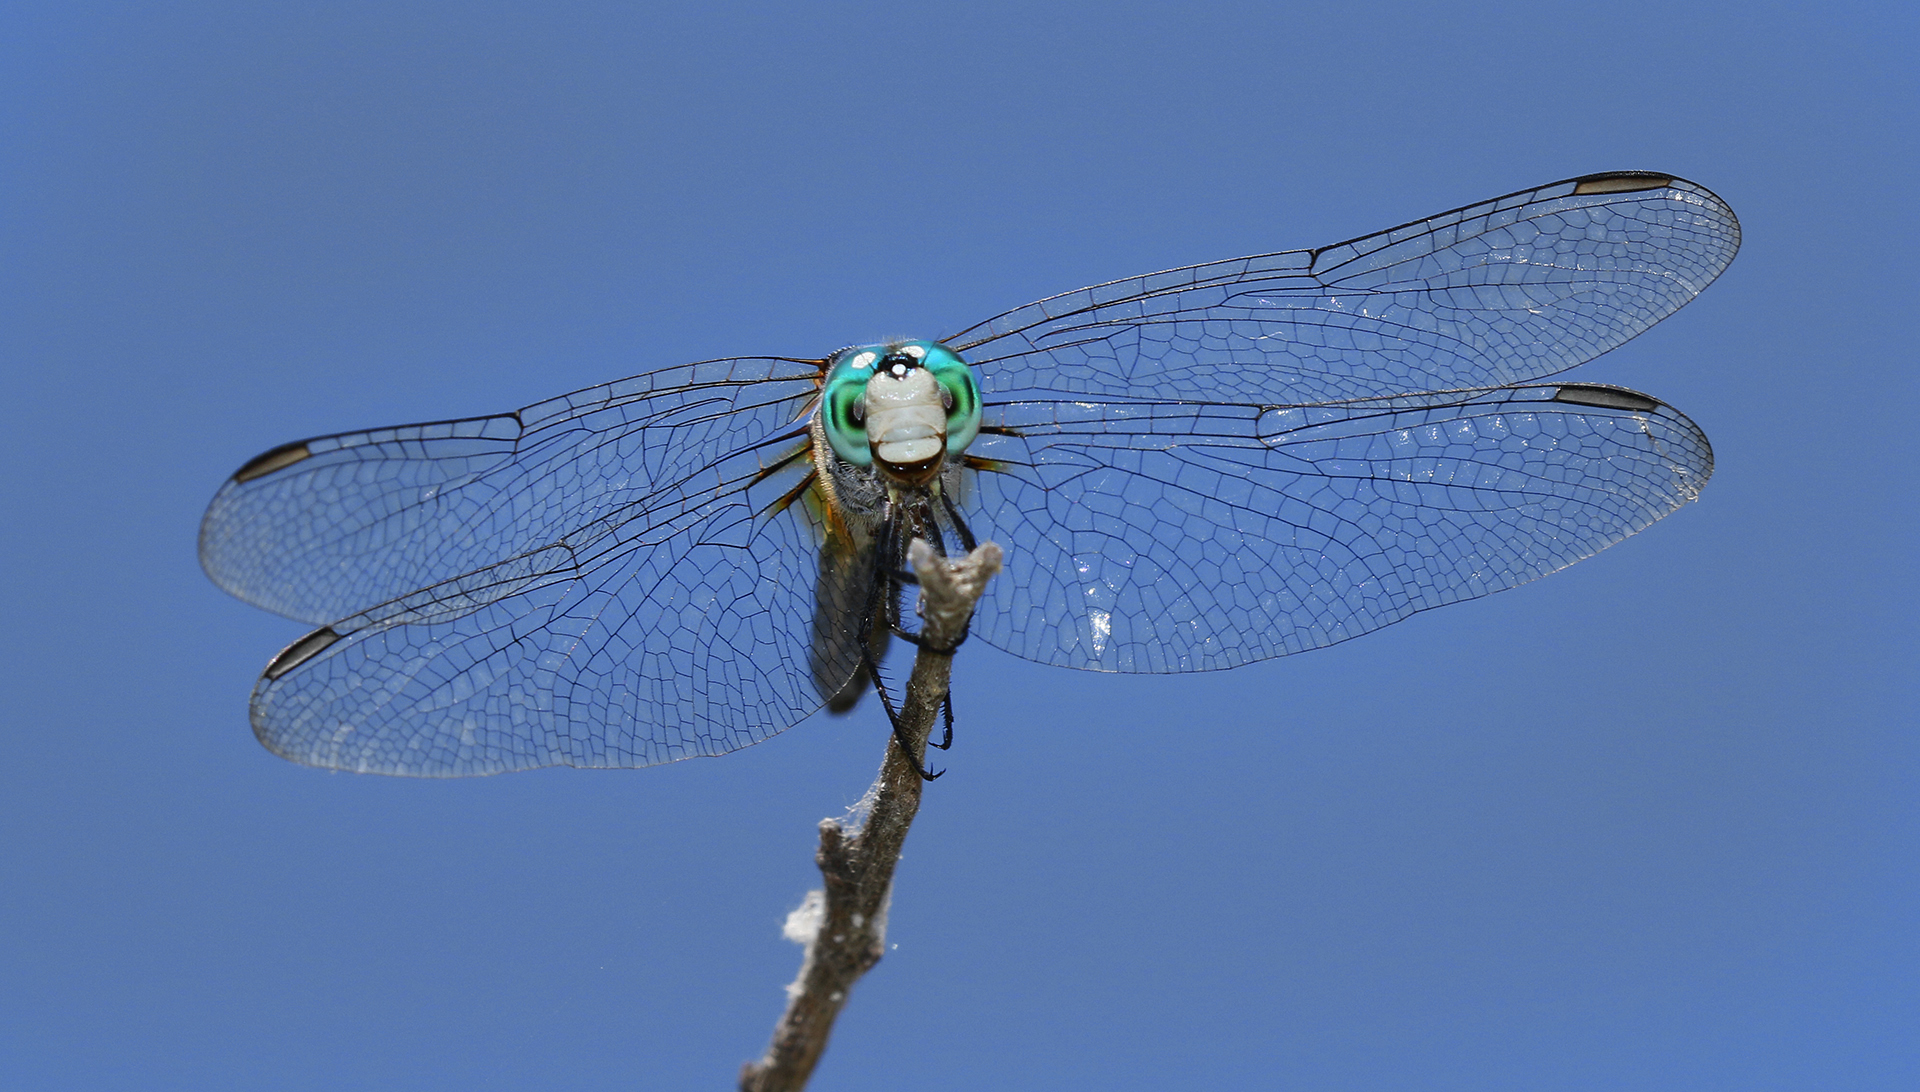 Dragonfly by Steve Cirone (Canon 7D Mark II, Canon 100-400mm II lens, Canon 600EX hot shoe flash)